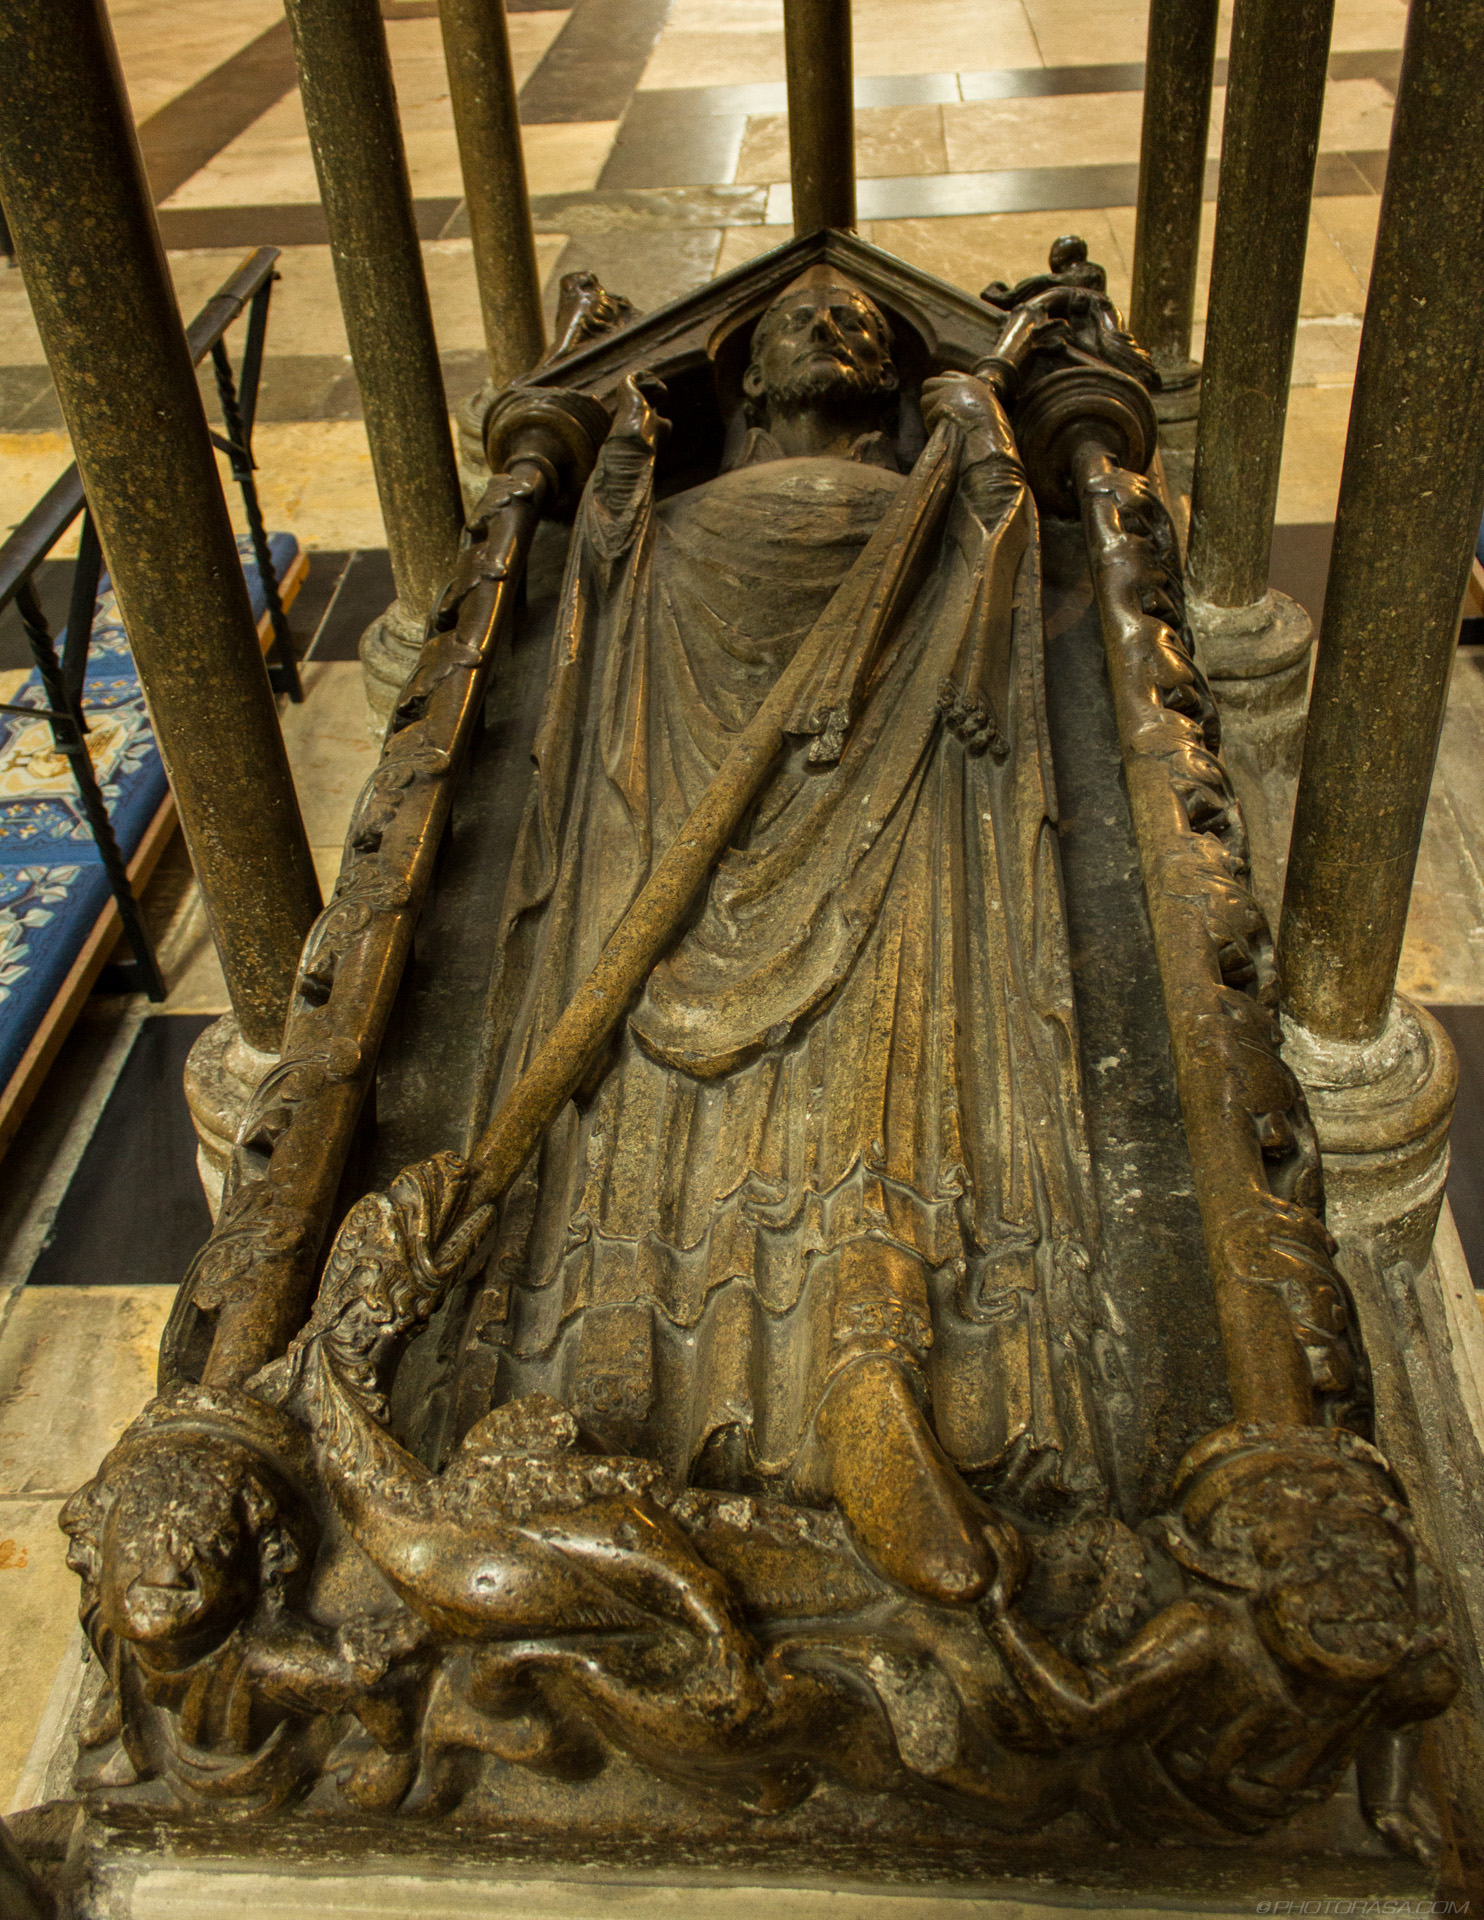 http://photorasa.com/yorkminster-cathedral/tomb-of-a-bishop/